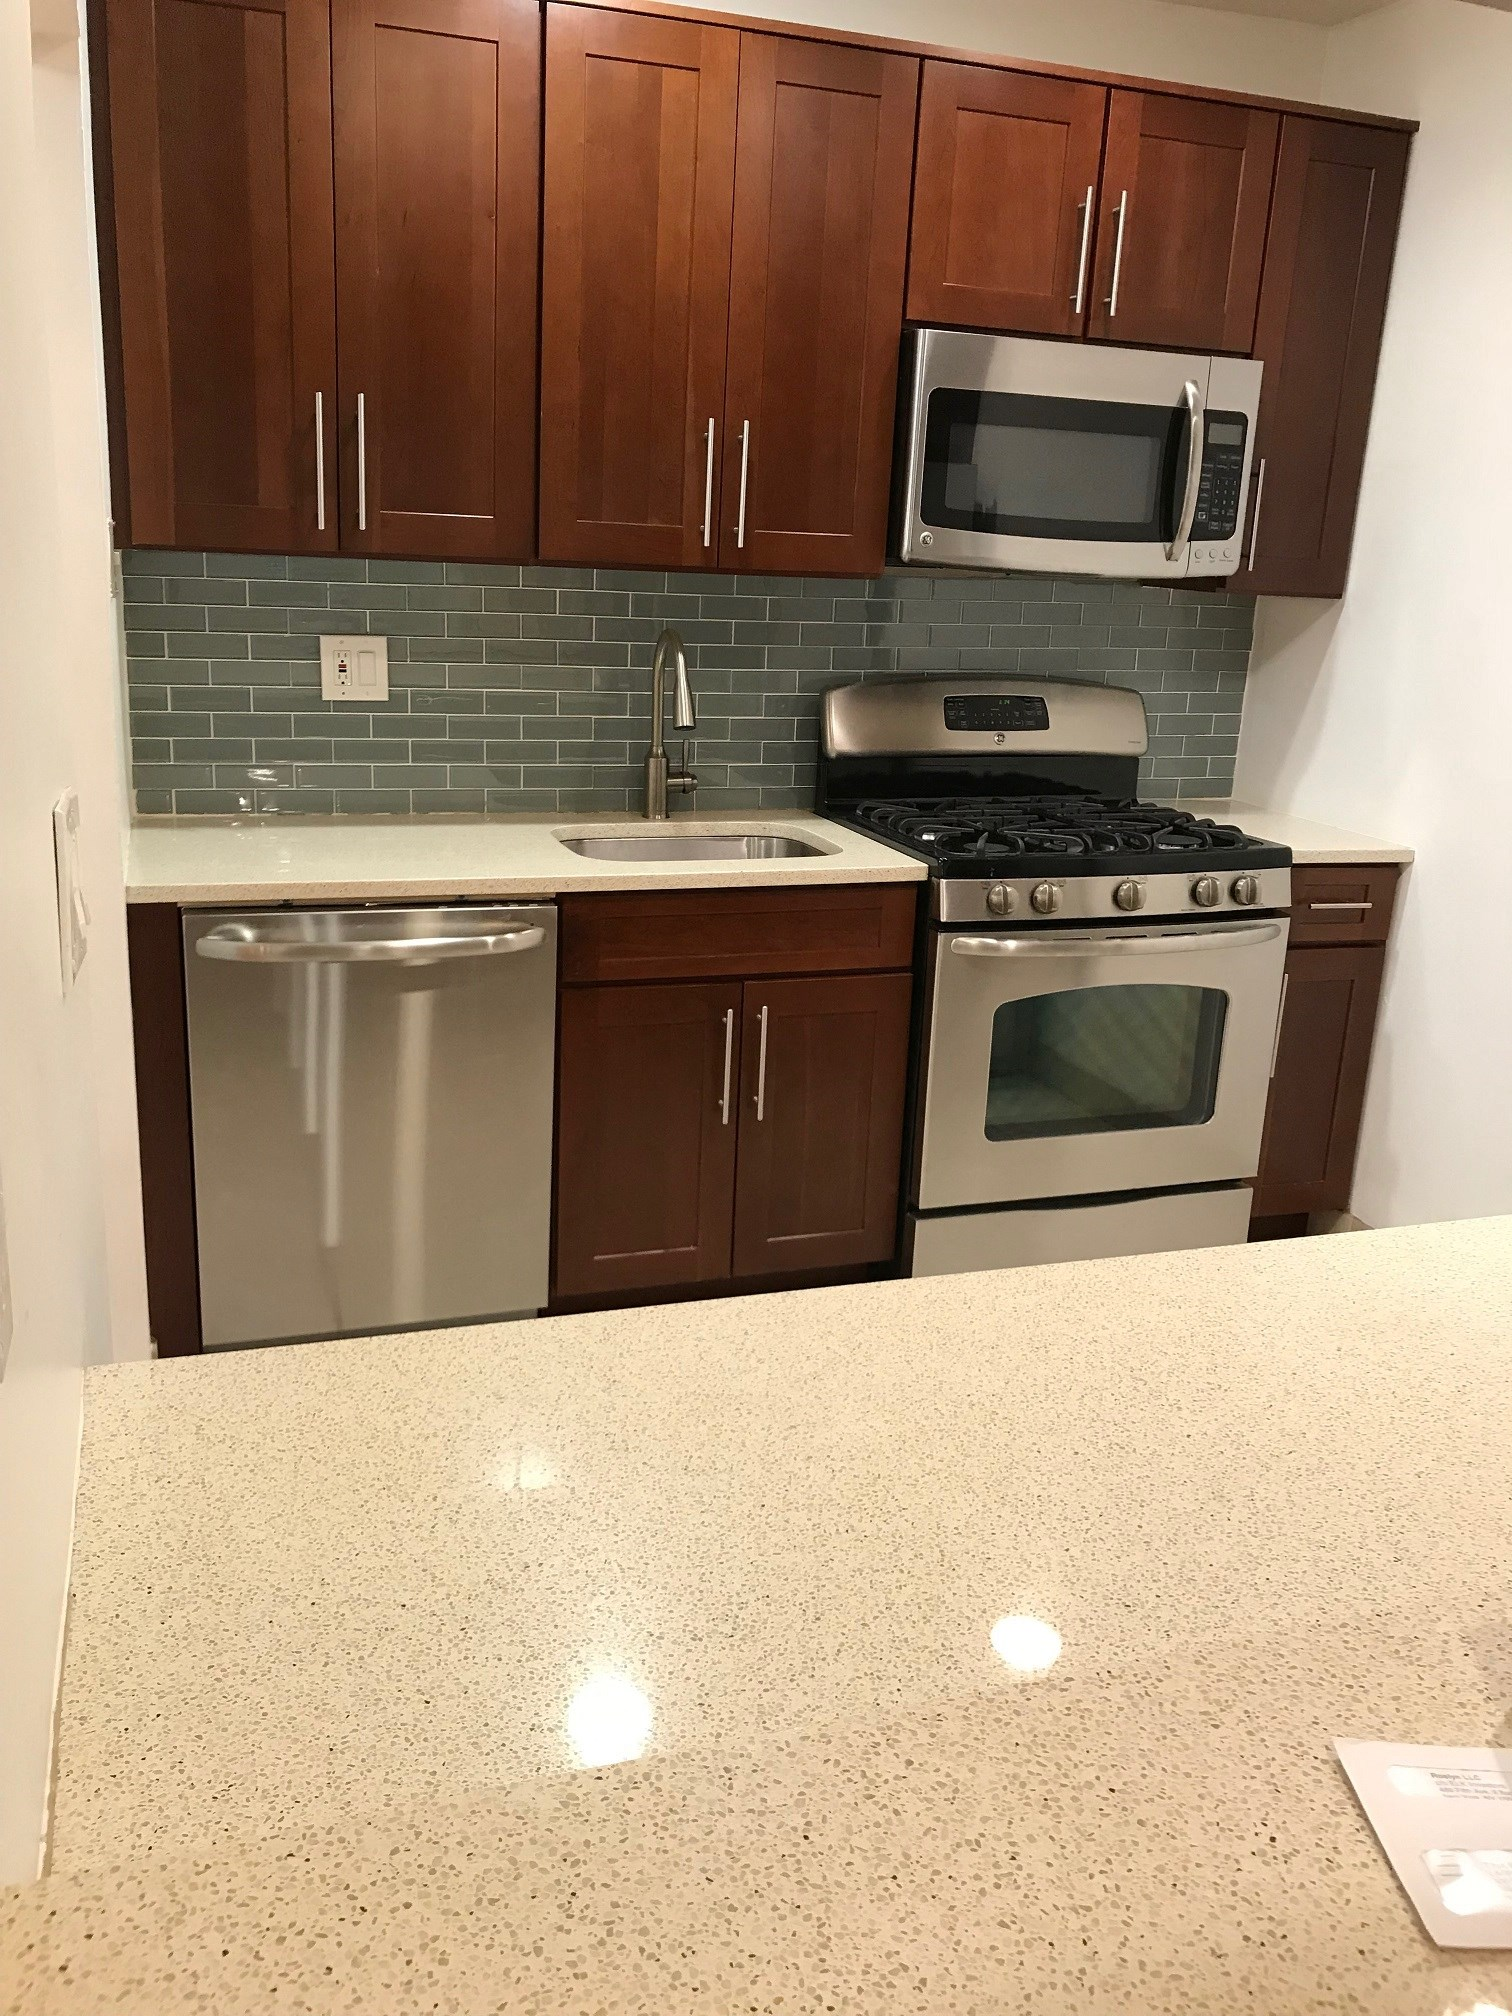 Renovated pass through kitchen with stainless steel appliances, dark wood cabinets and granite counters